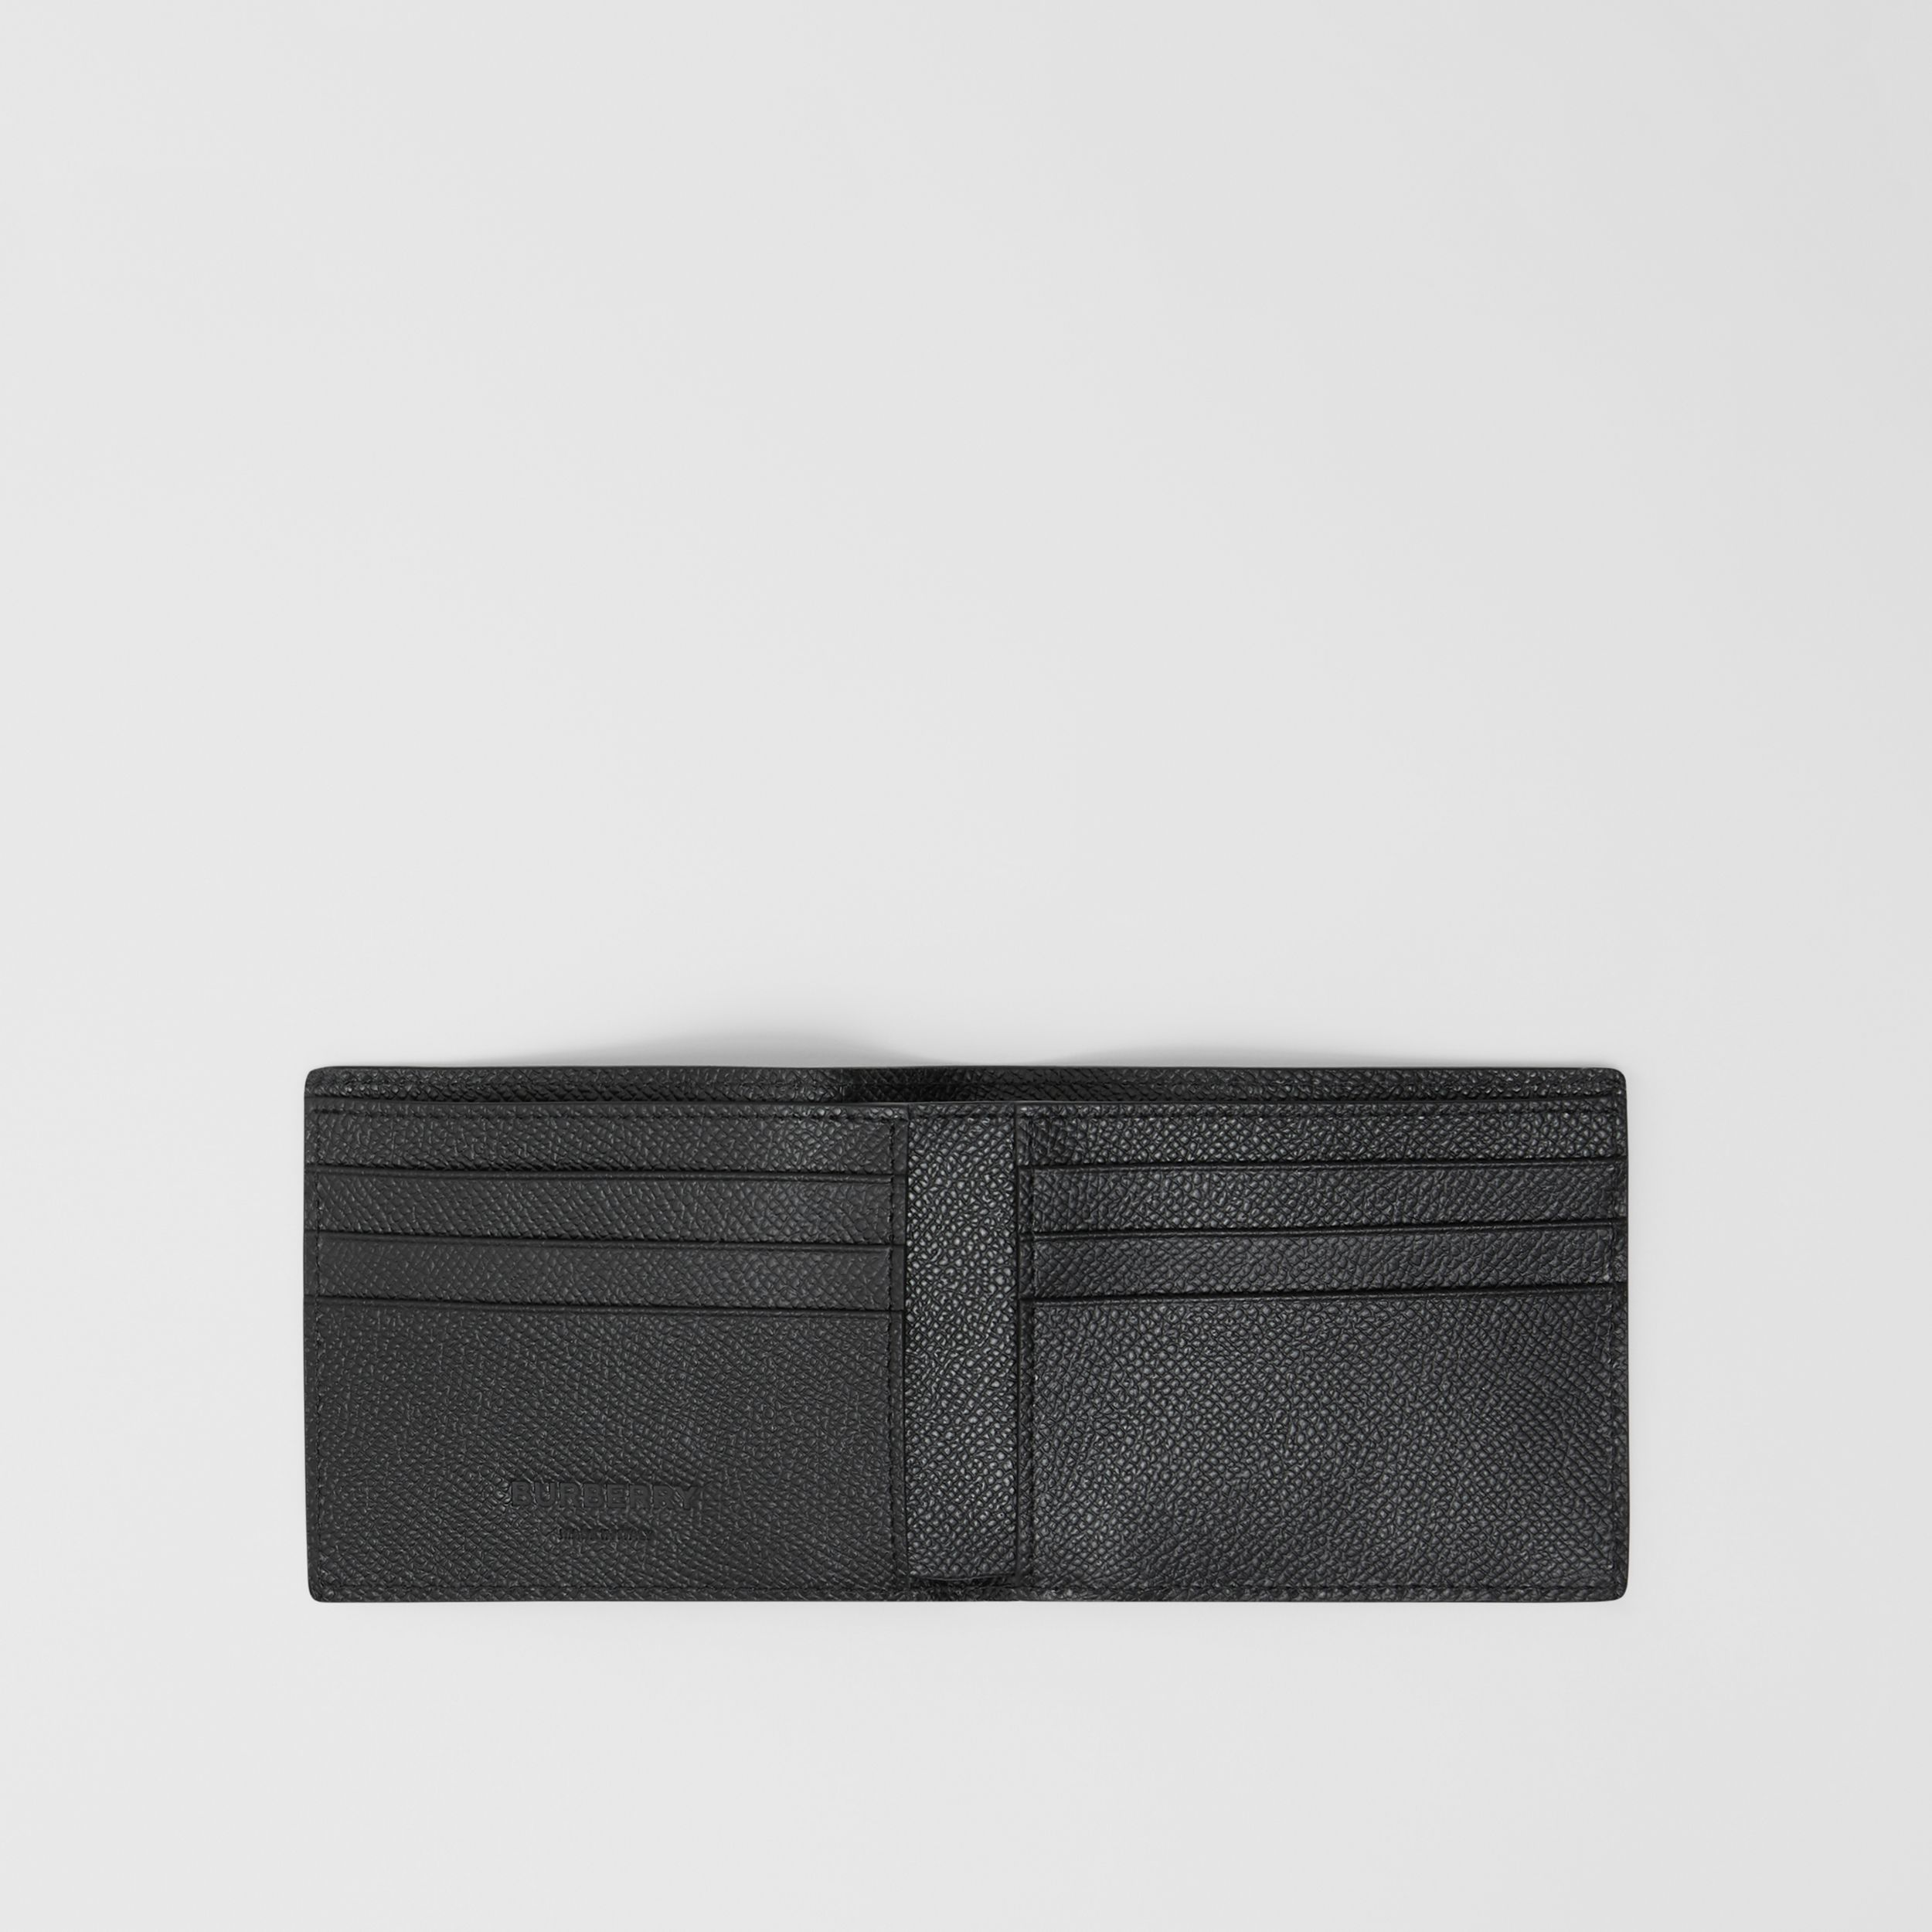 Grainy Leather Bifold Wallet in Black - Men | Burberry United Kingdom - 3